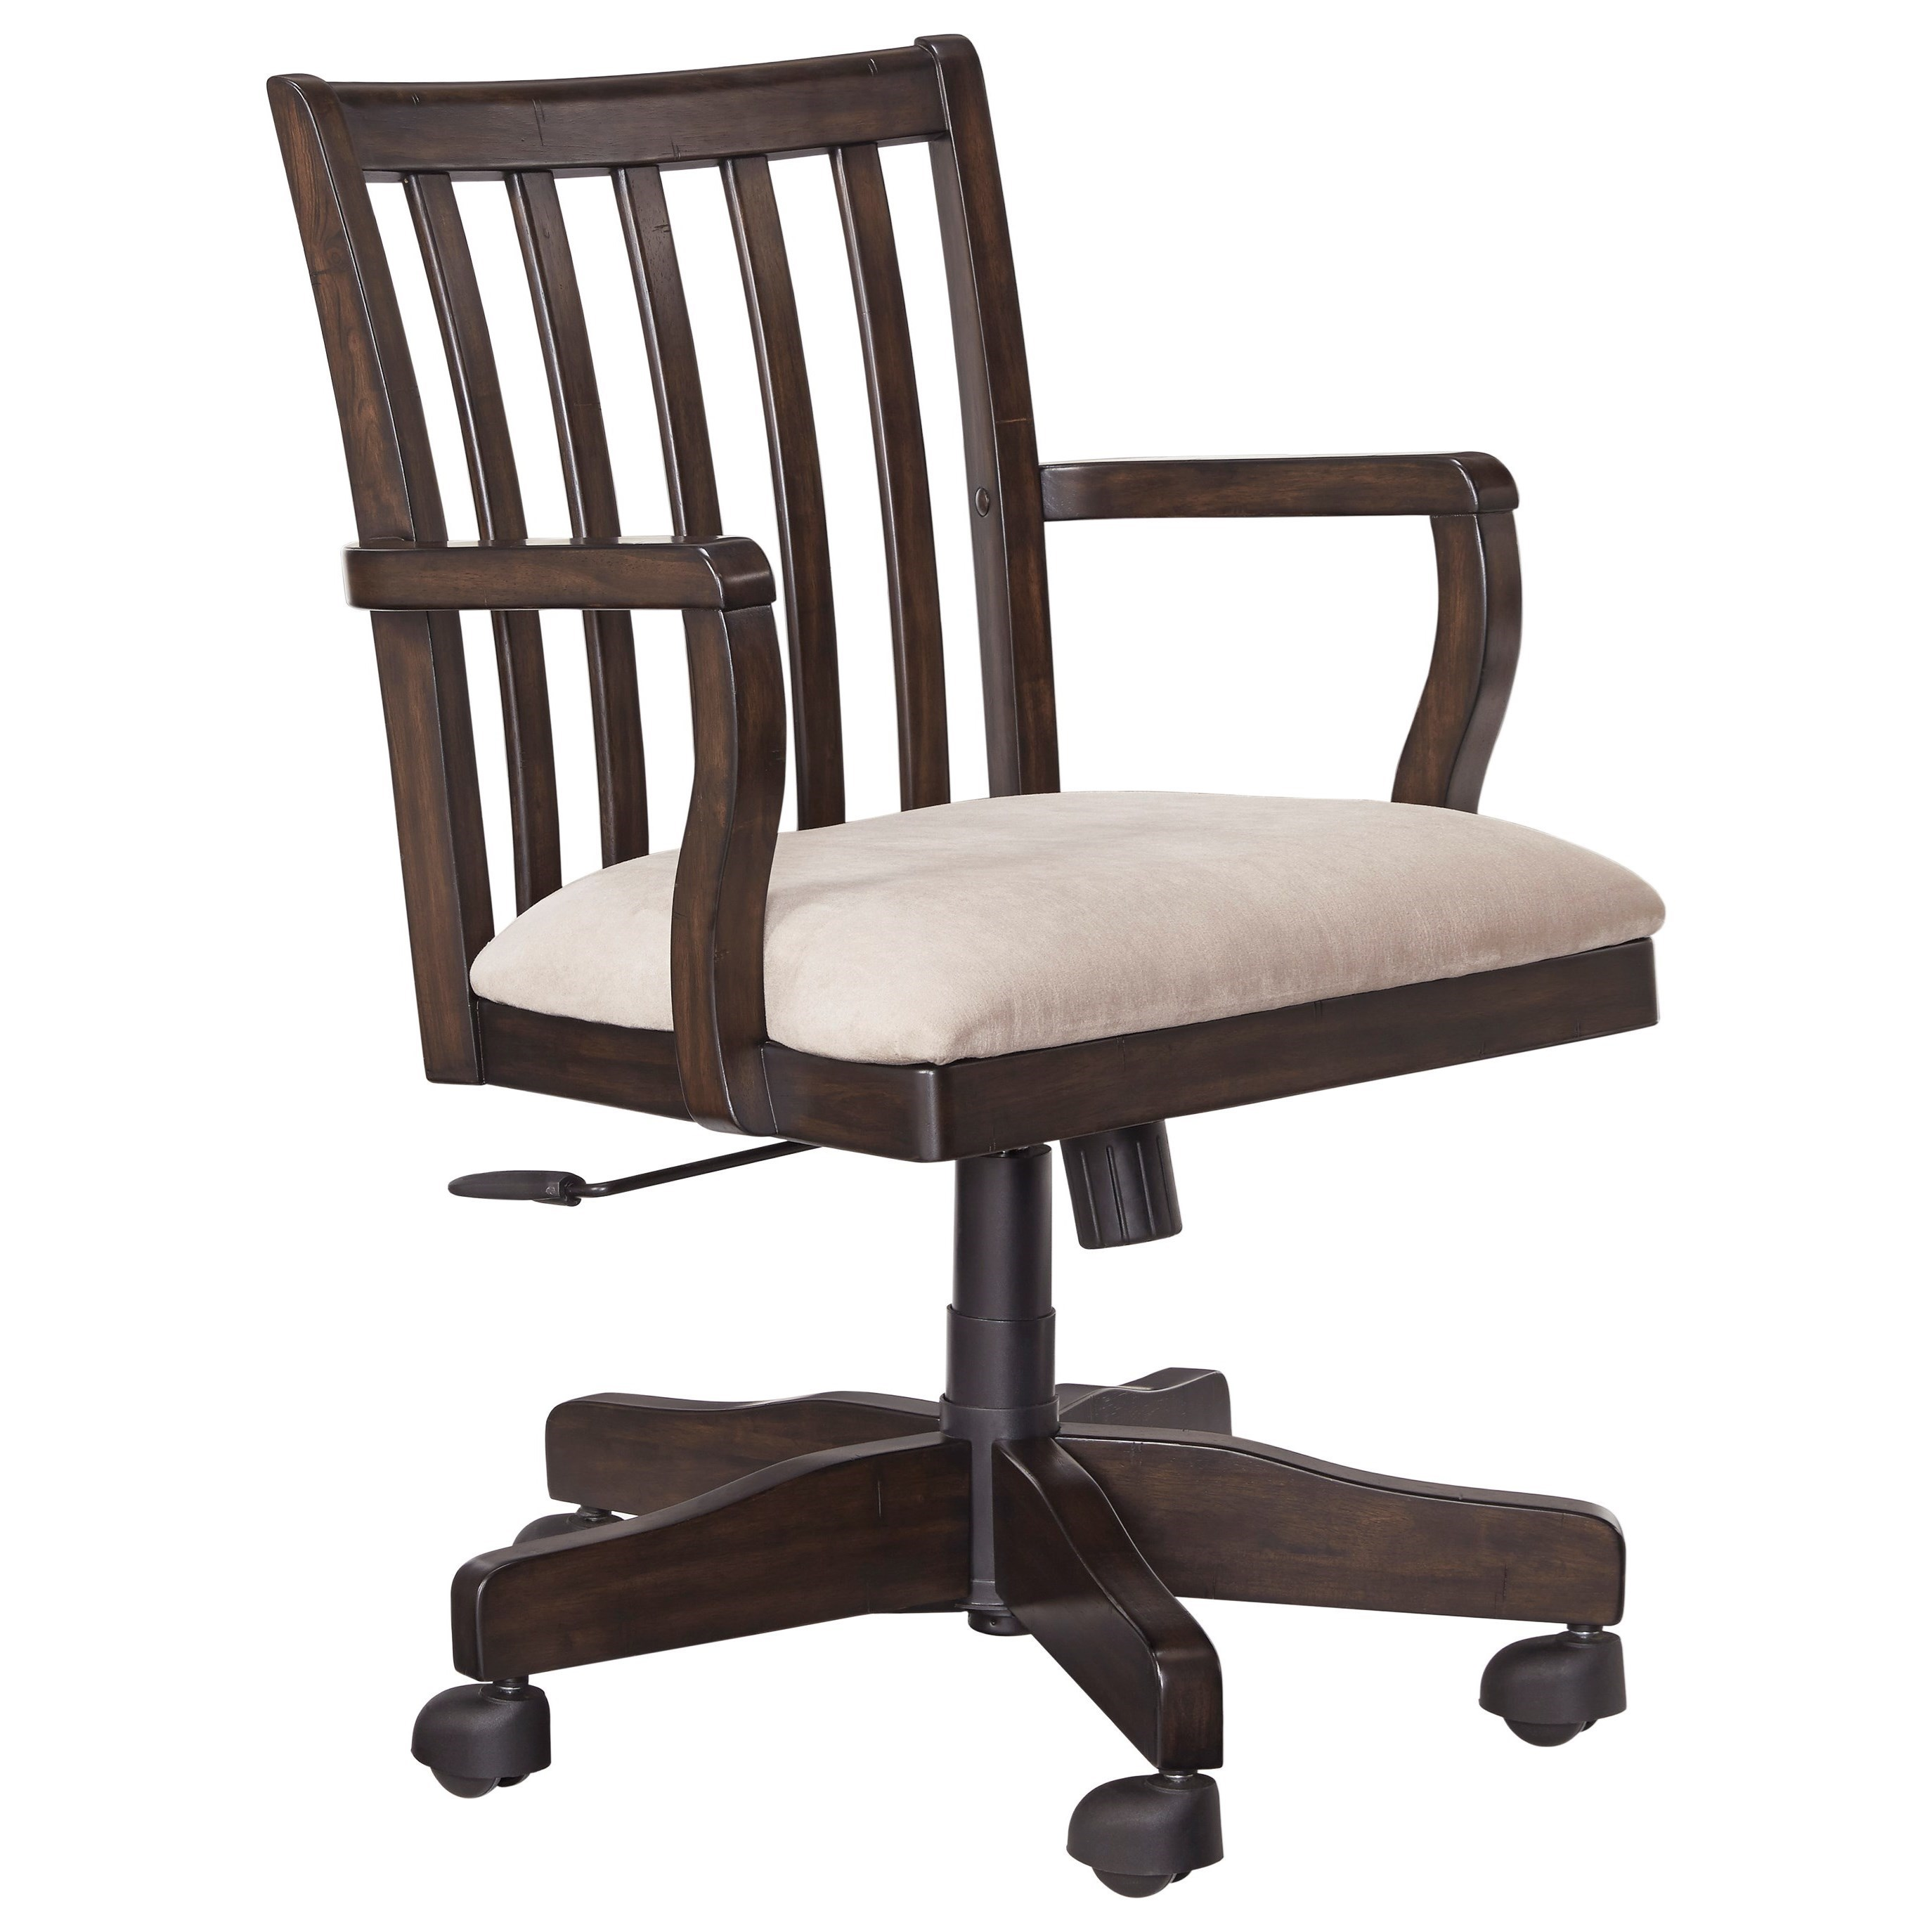 Amazing Signature Design By Ashley TownserHome Office Swivel Desk Chair ...